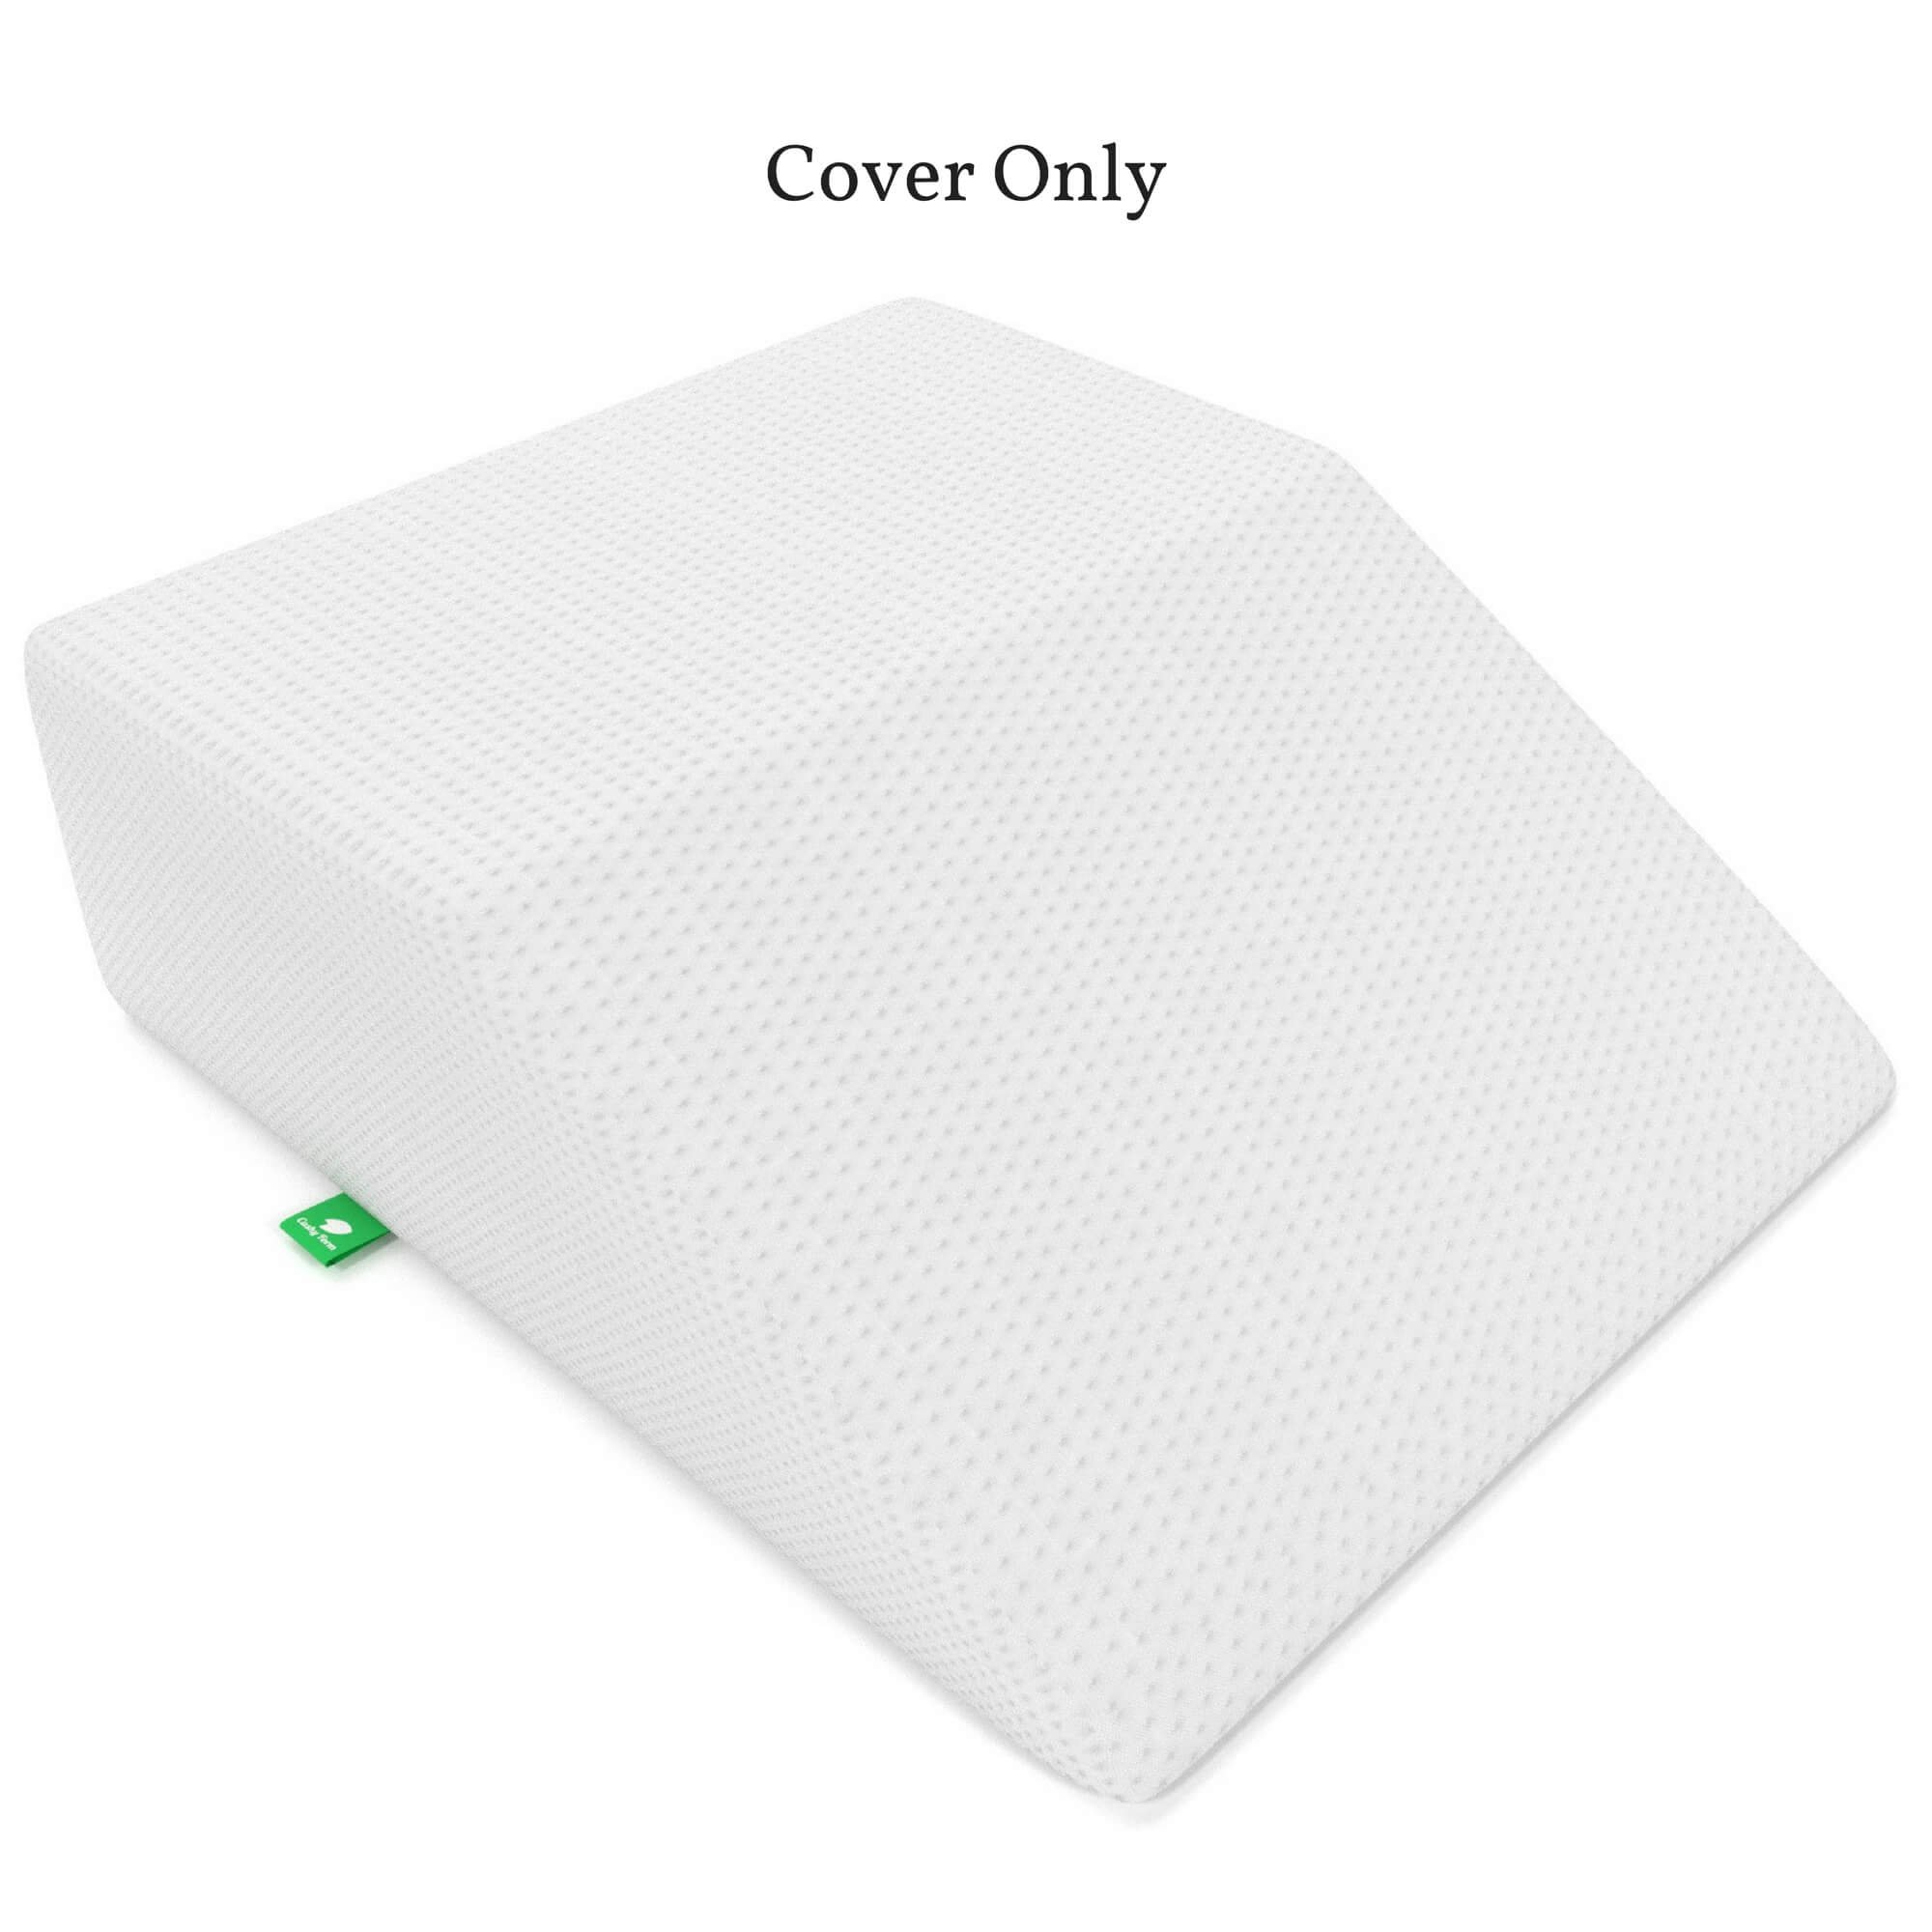 [Replacement Cover] Leg Elevation Pillow Replacement Cover - Fits Cushy Form Leg Wedge - Hypoallergenic, Machine Washable Case (Replacement Cover ONLY)